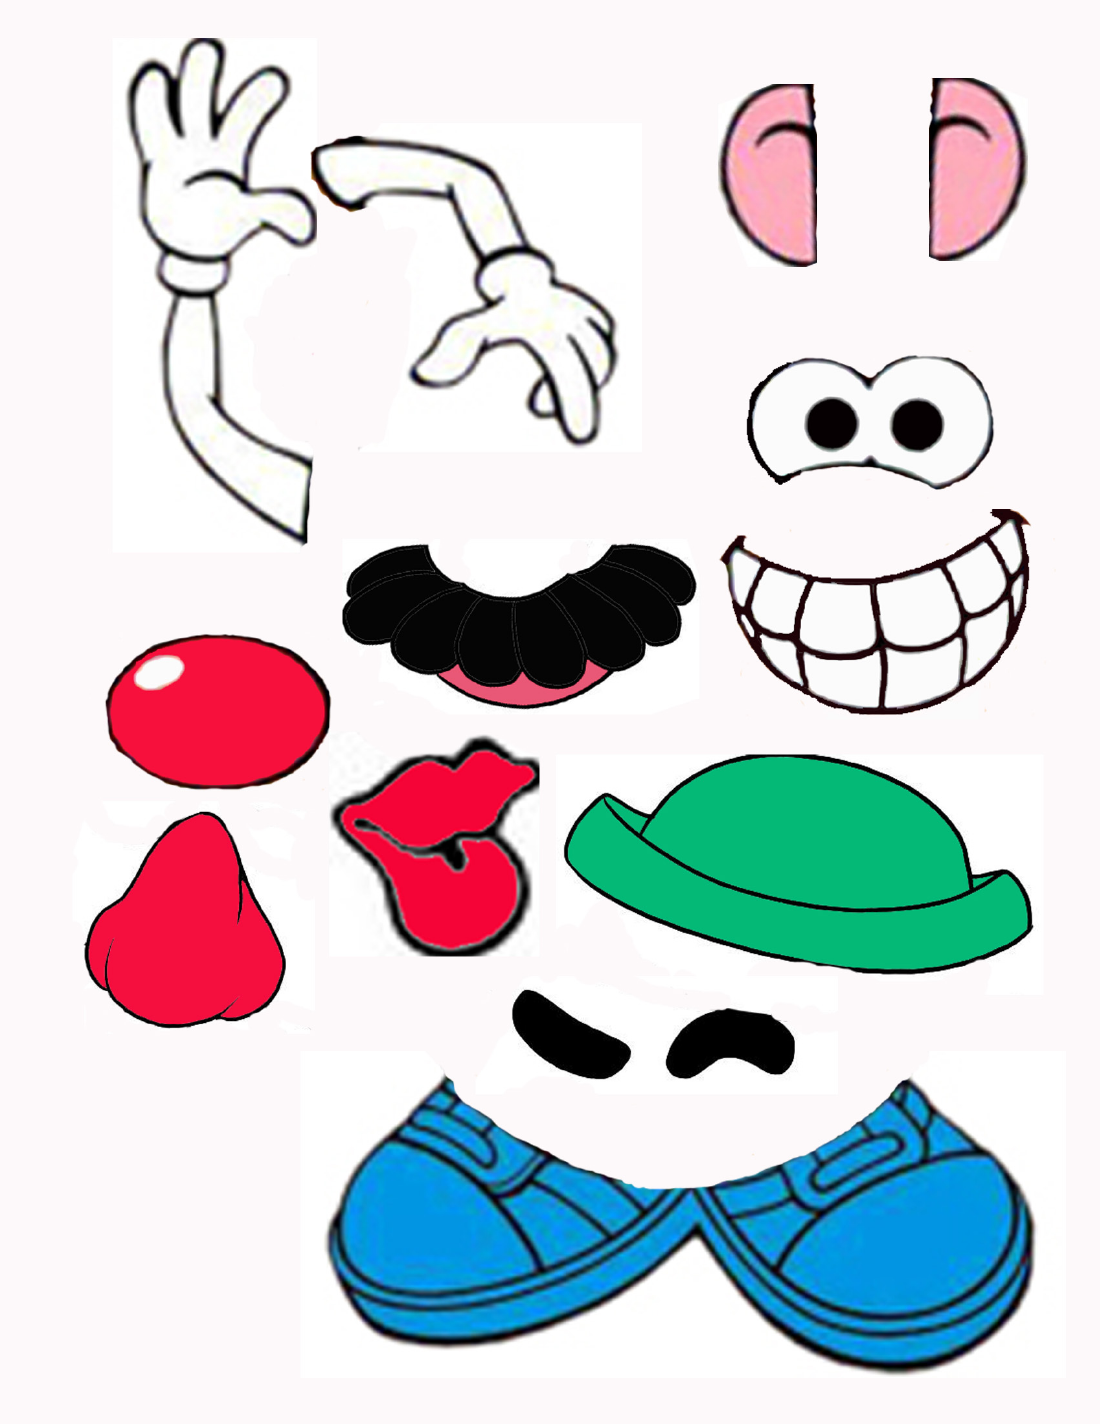 image relating to Mr Potato Head Printable named mr potato intellect elements printable - Google Seem Sensory